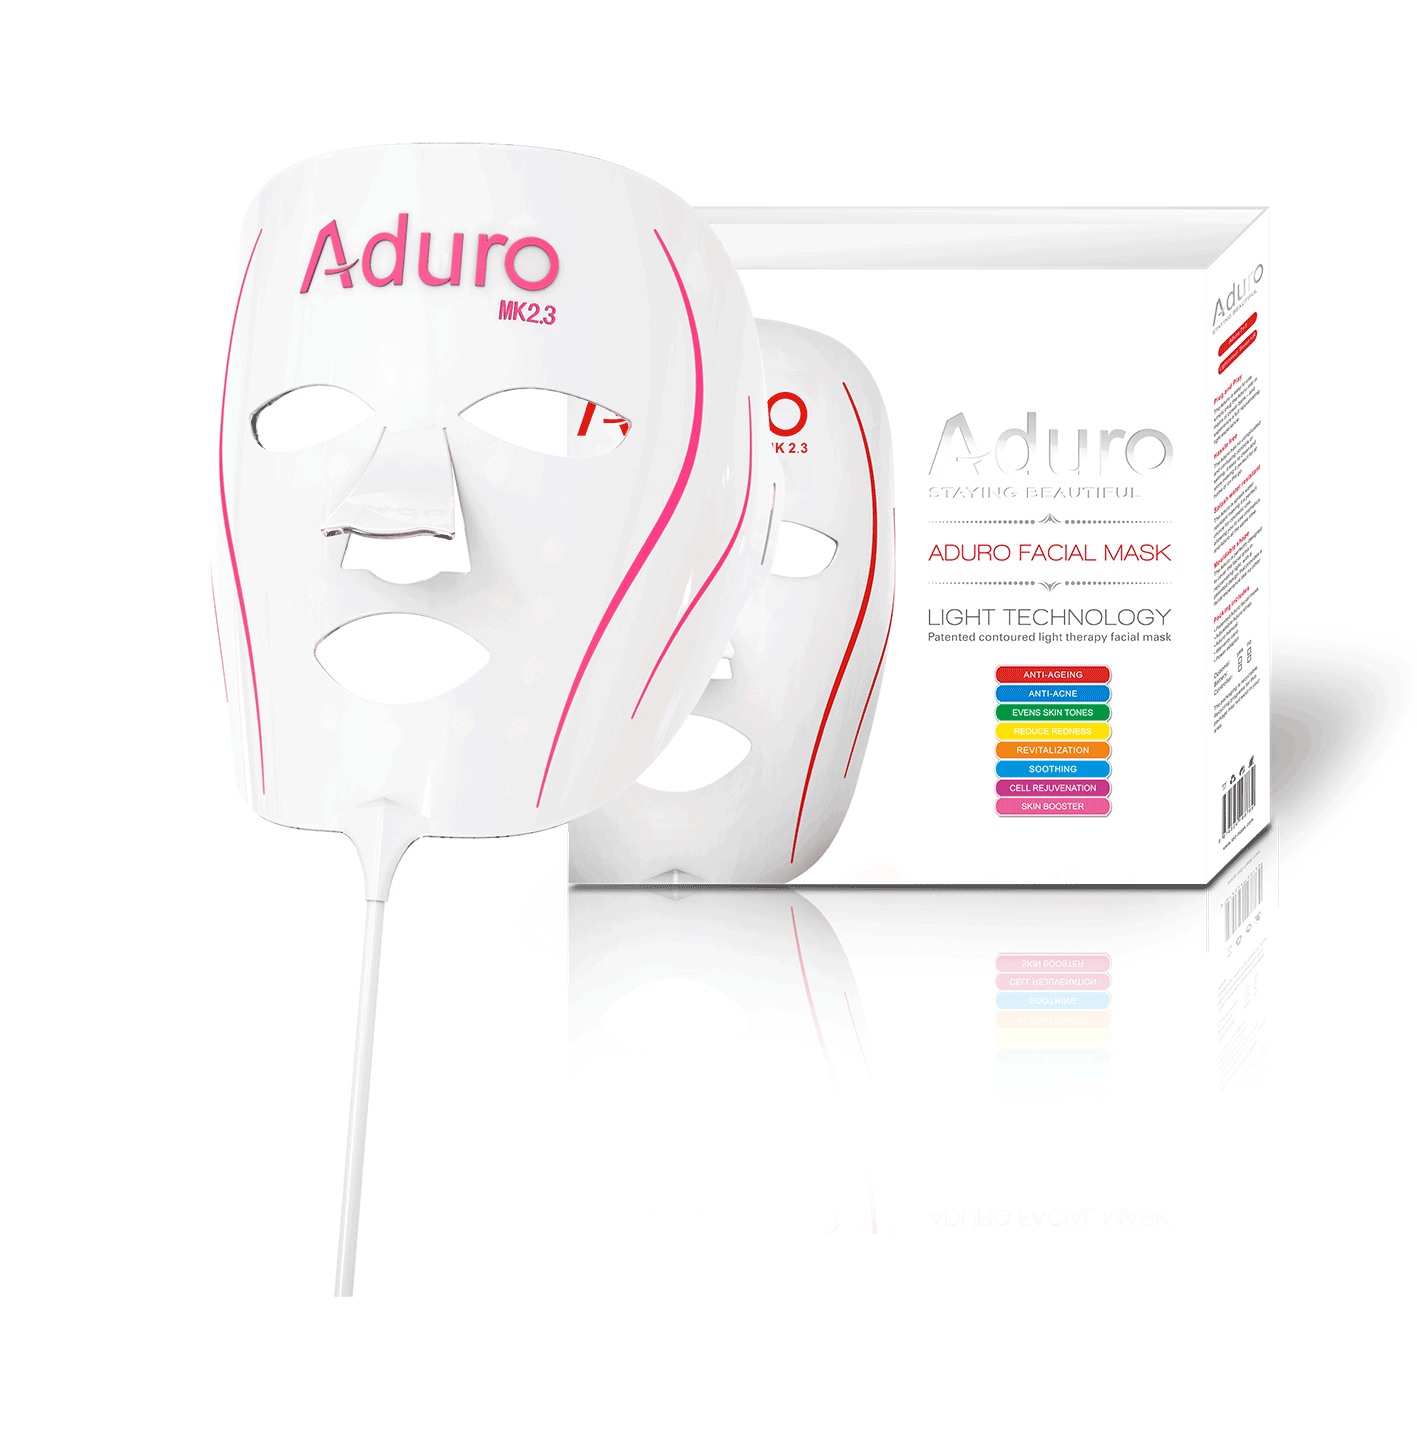 The Aduro 7+1 is our most advanced home facial LED mask. Combining al the benefits of 7 LED colours with added Infra-Red Skin Boosting technology, which penetrates deeper into the skin than any other facial mask and offers the most diverse solution to skin imperfections available.        Free WorldWide Shipping - One Year International Warranty